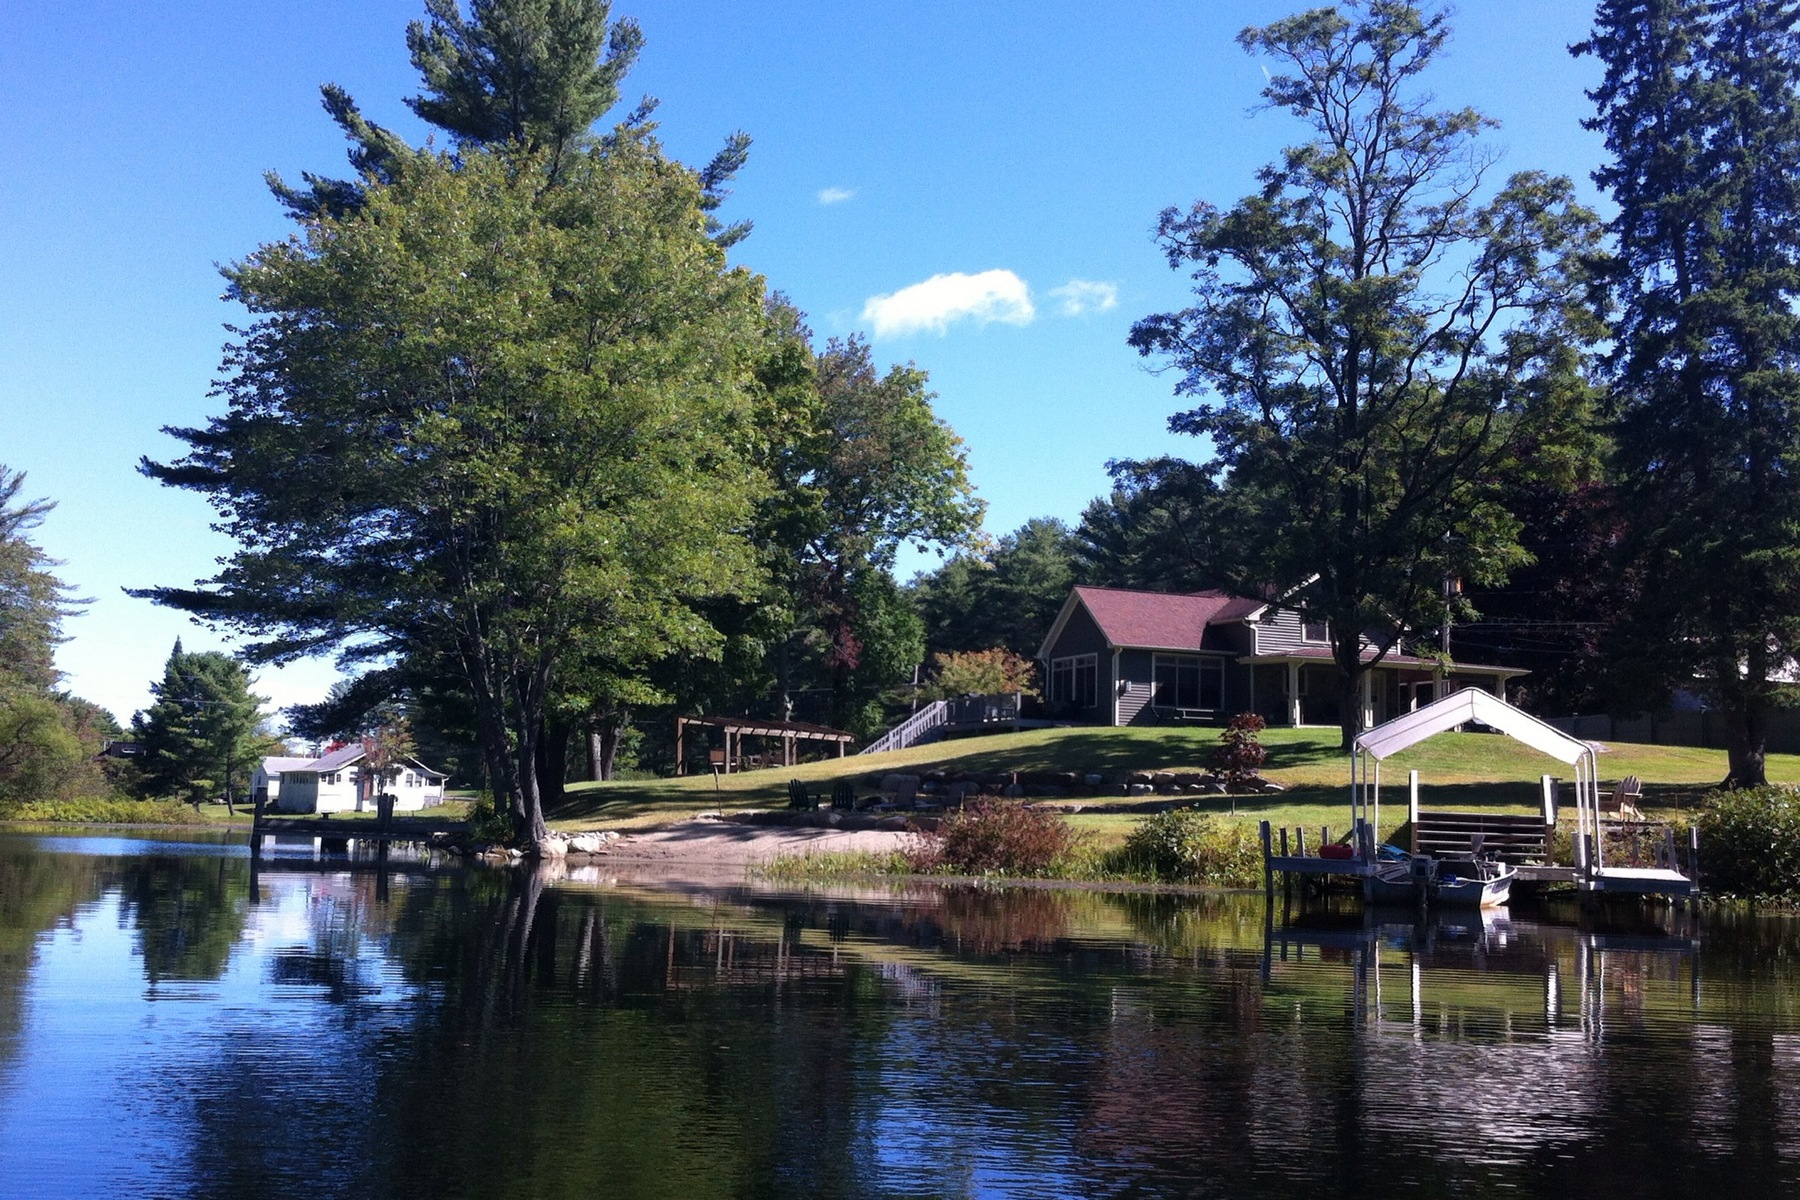 Single Family Home for Sale at Brant Lake Cottage 6653 State Route8 Horicon, New York 12815 United States